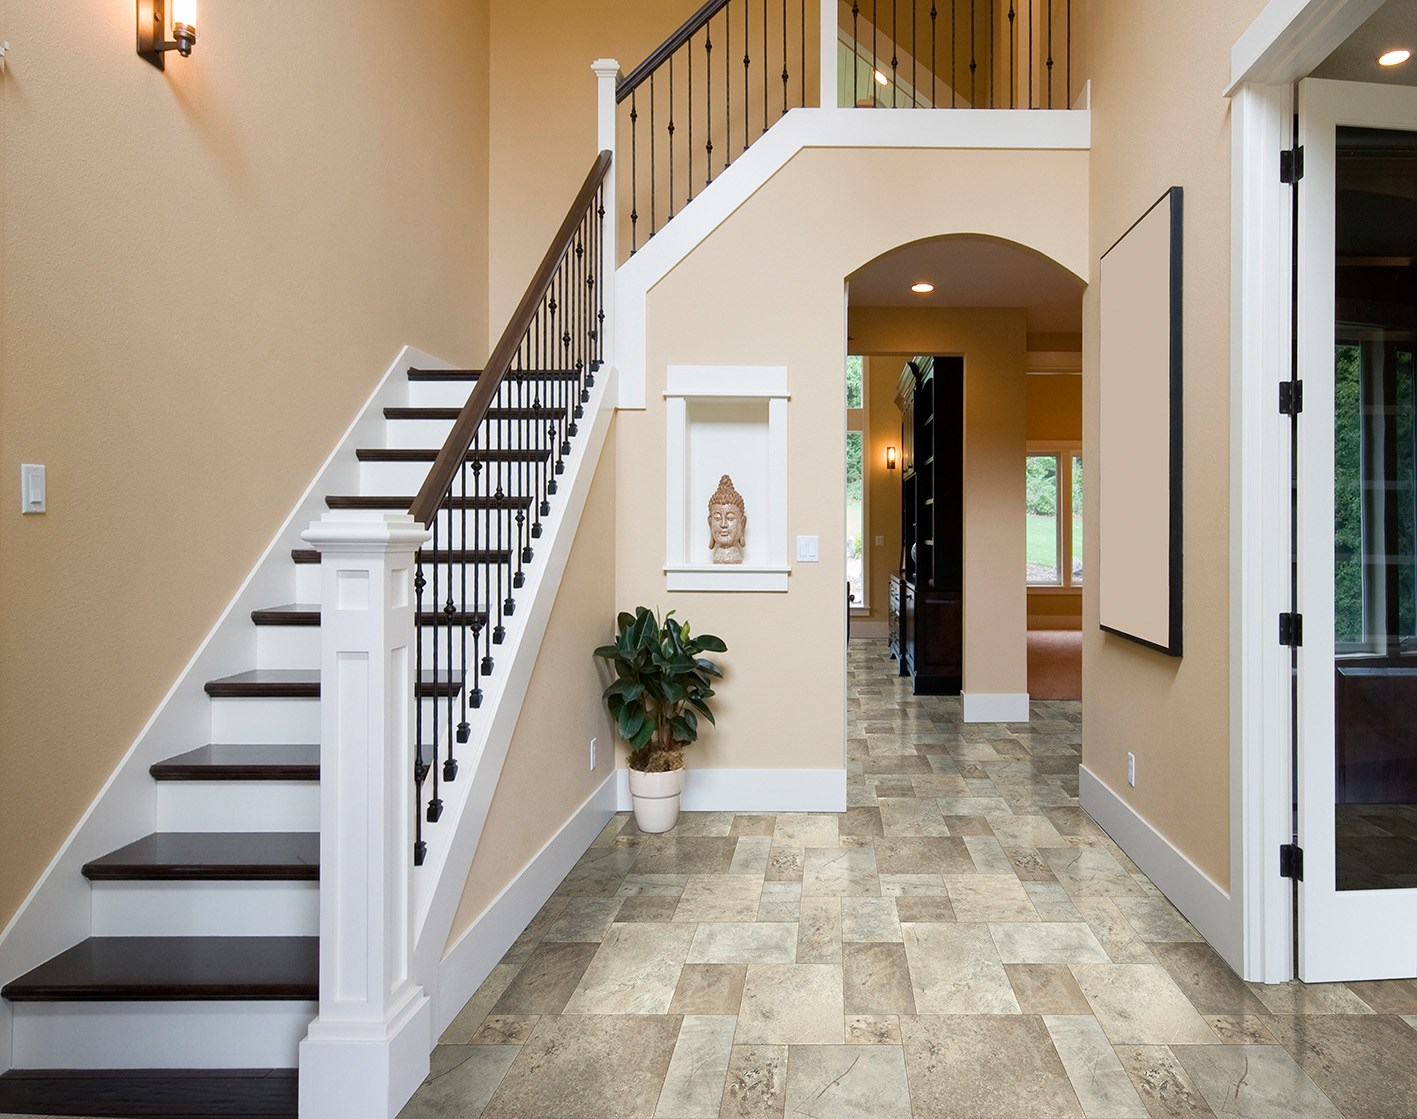 Top 5 Benefits of Opting for Water Resistant / Waterproof Flooring